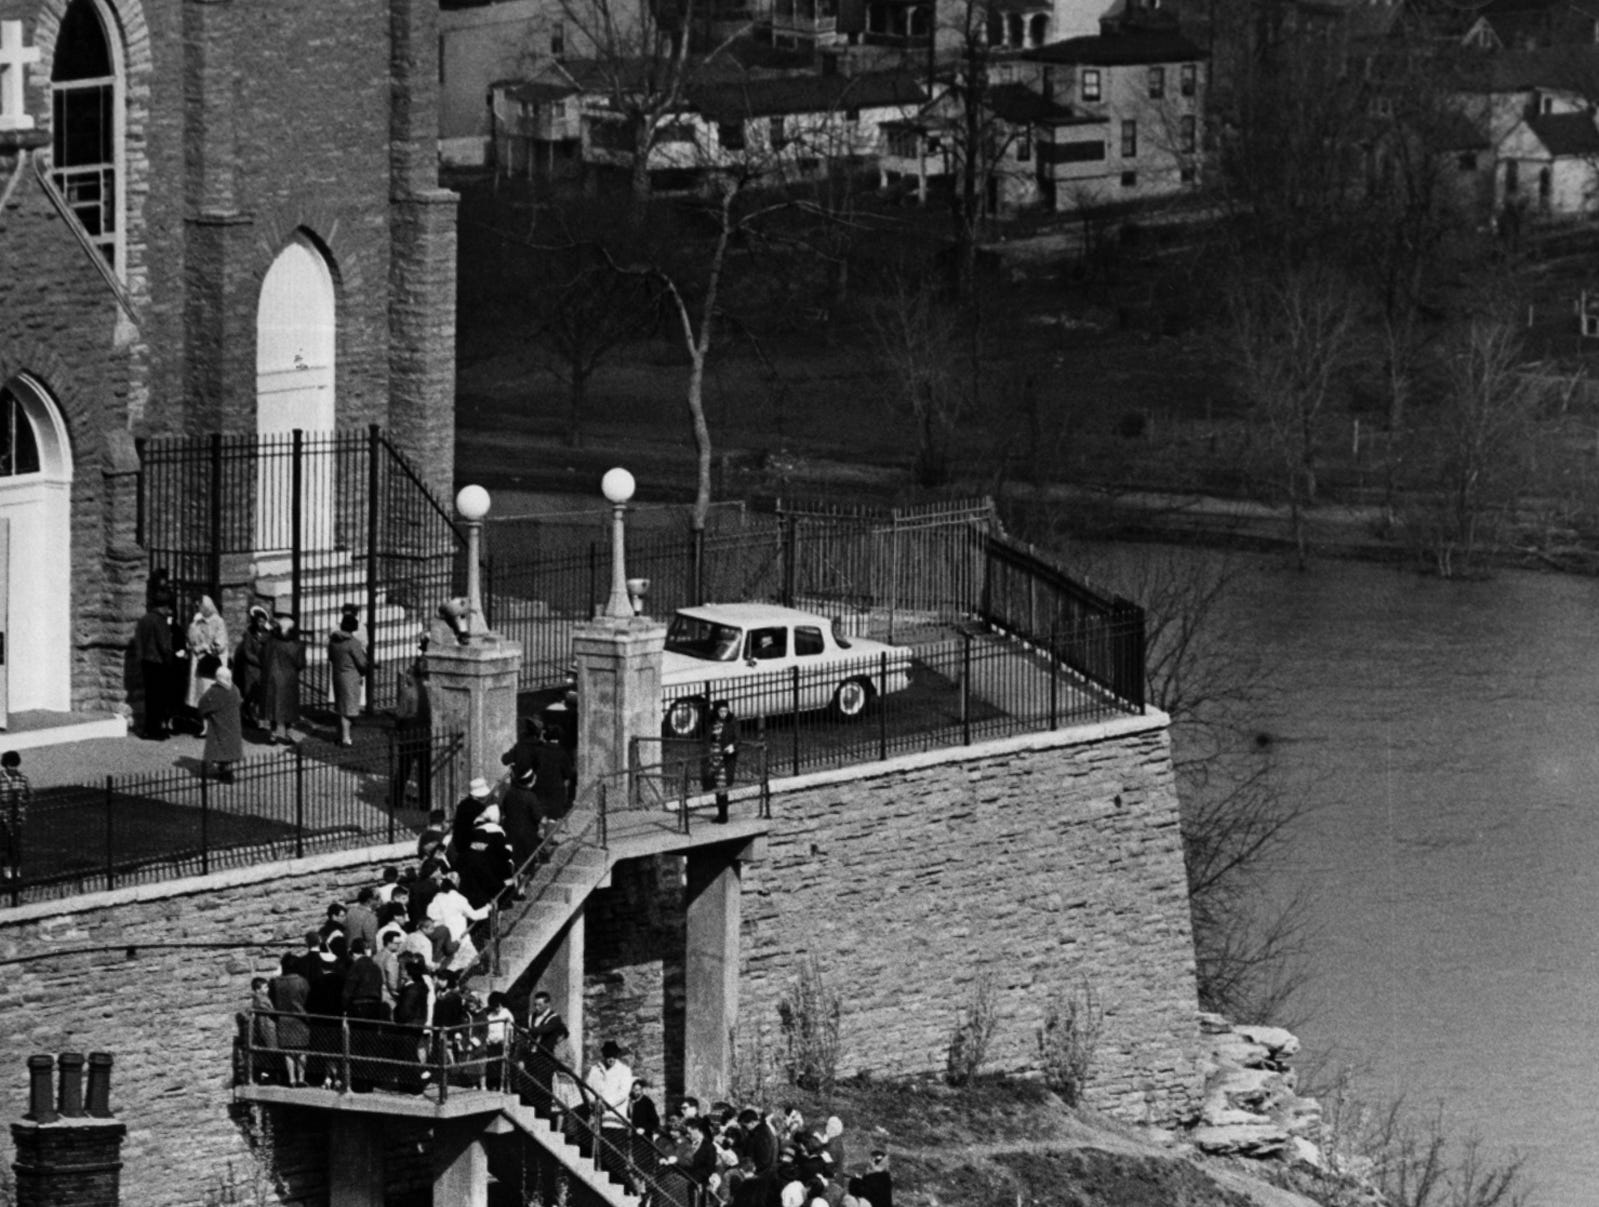 APRIL 1965: People pray the steps at Immaculata Church in Mount Adams.